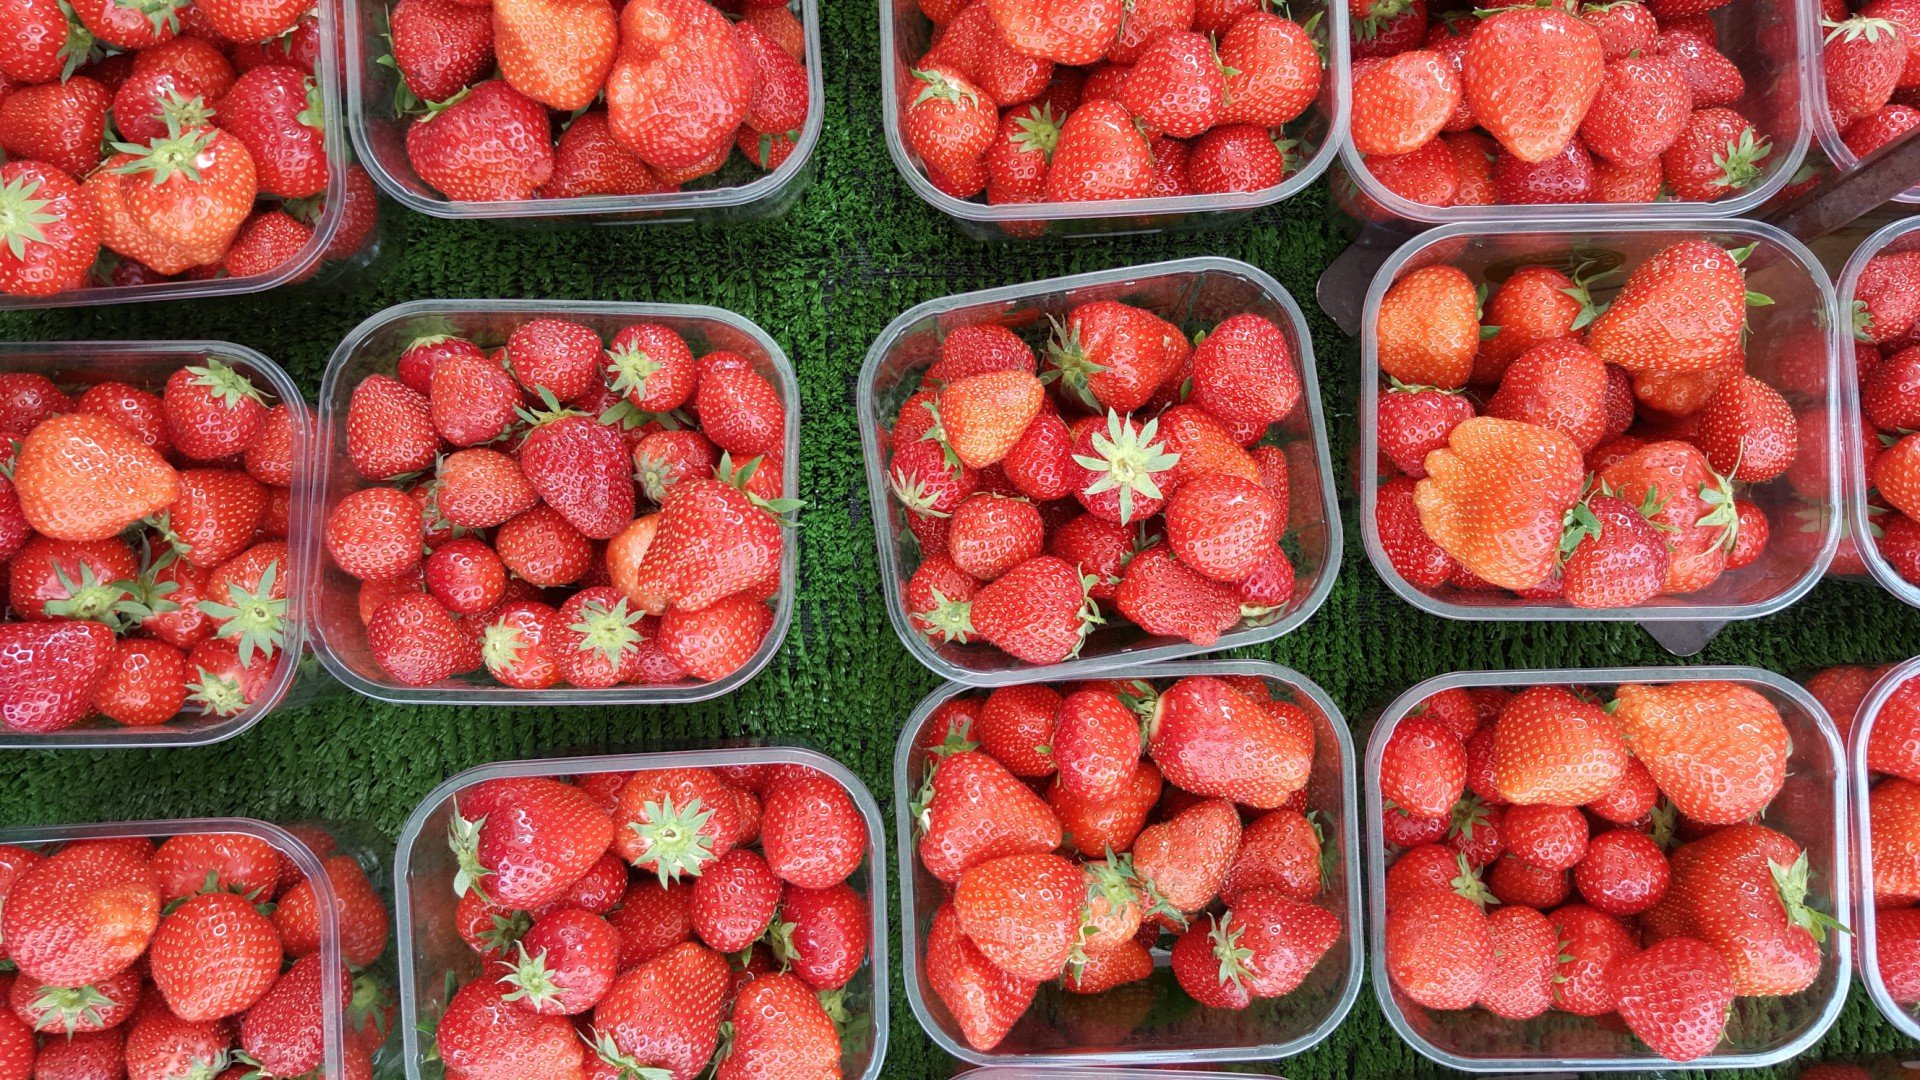 Strawberry Season and Festa in Malta 2020 - Best Time